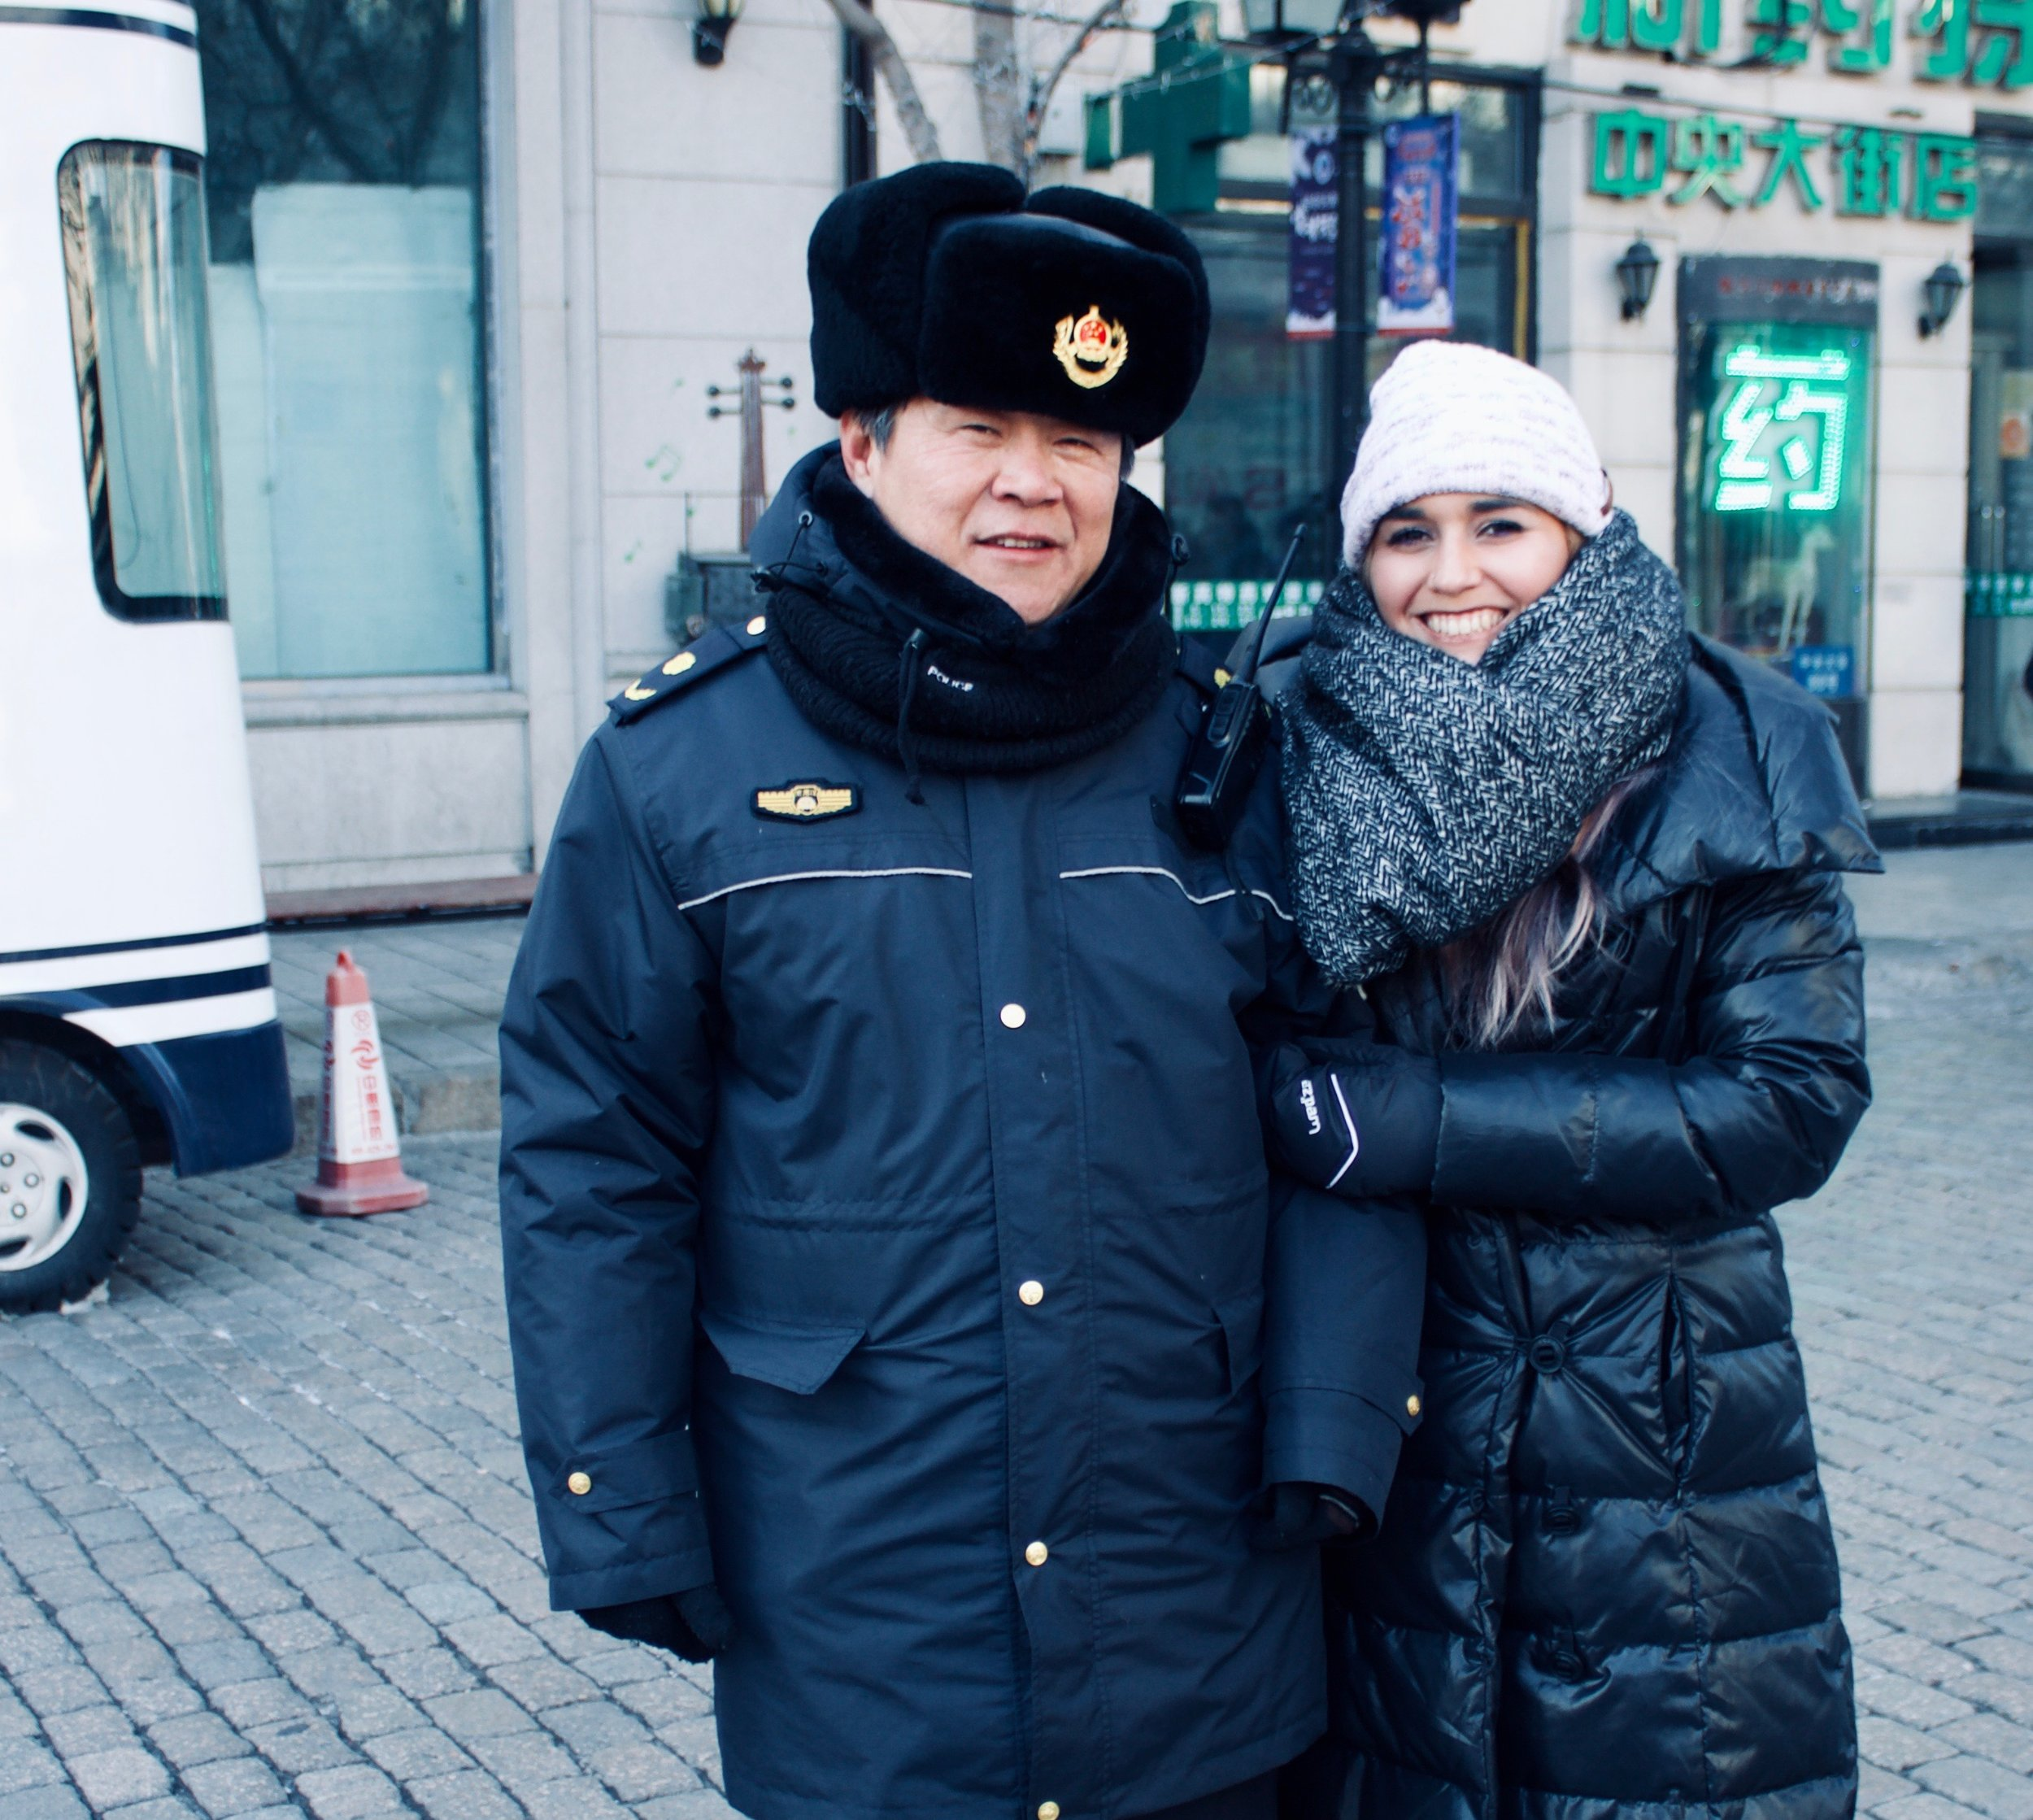 I was jealous so of course I wanted a picture with the Chinese police officer with the Russian hat.